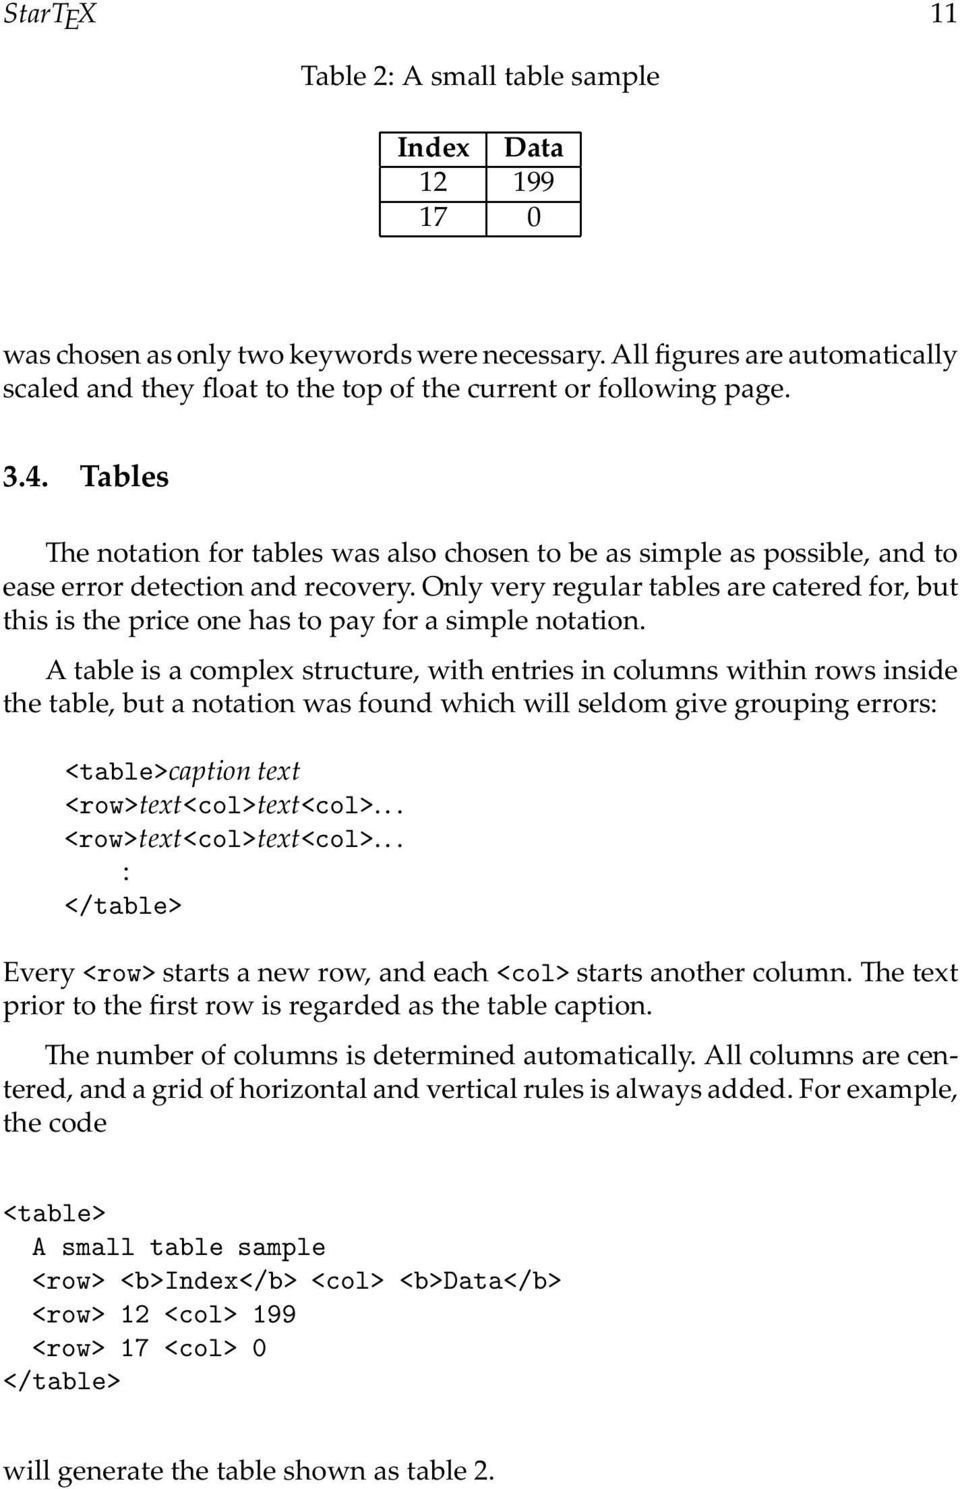 A table is a complex structure, with entries in columns within rows inside the table, but a notation was found which will seldom give grouping errors: <table>captiontext <row>text<col>text<col>.